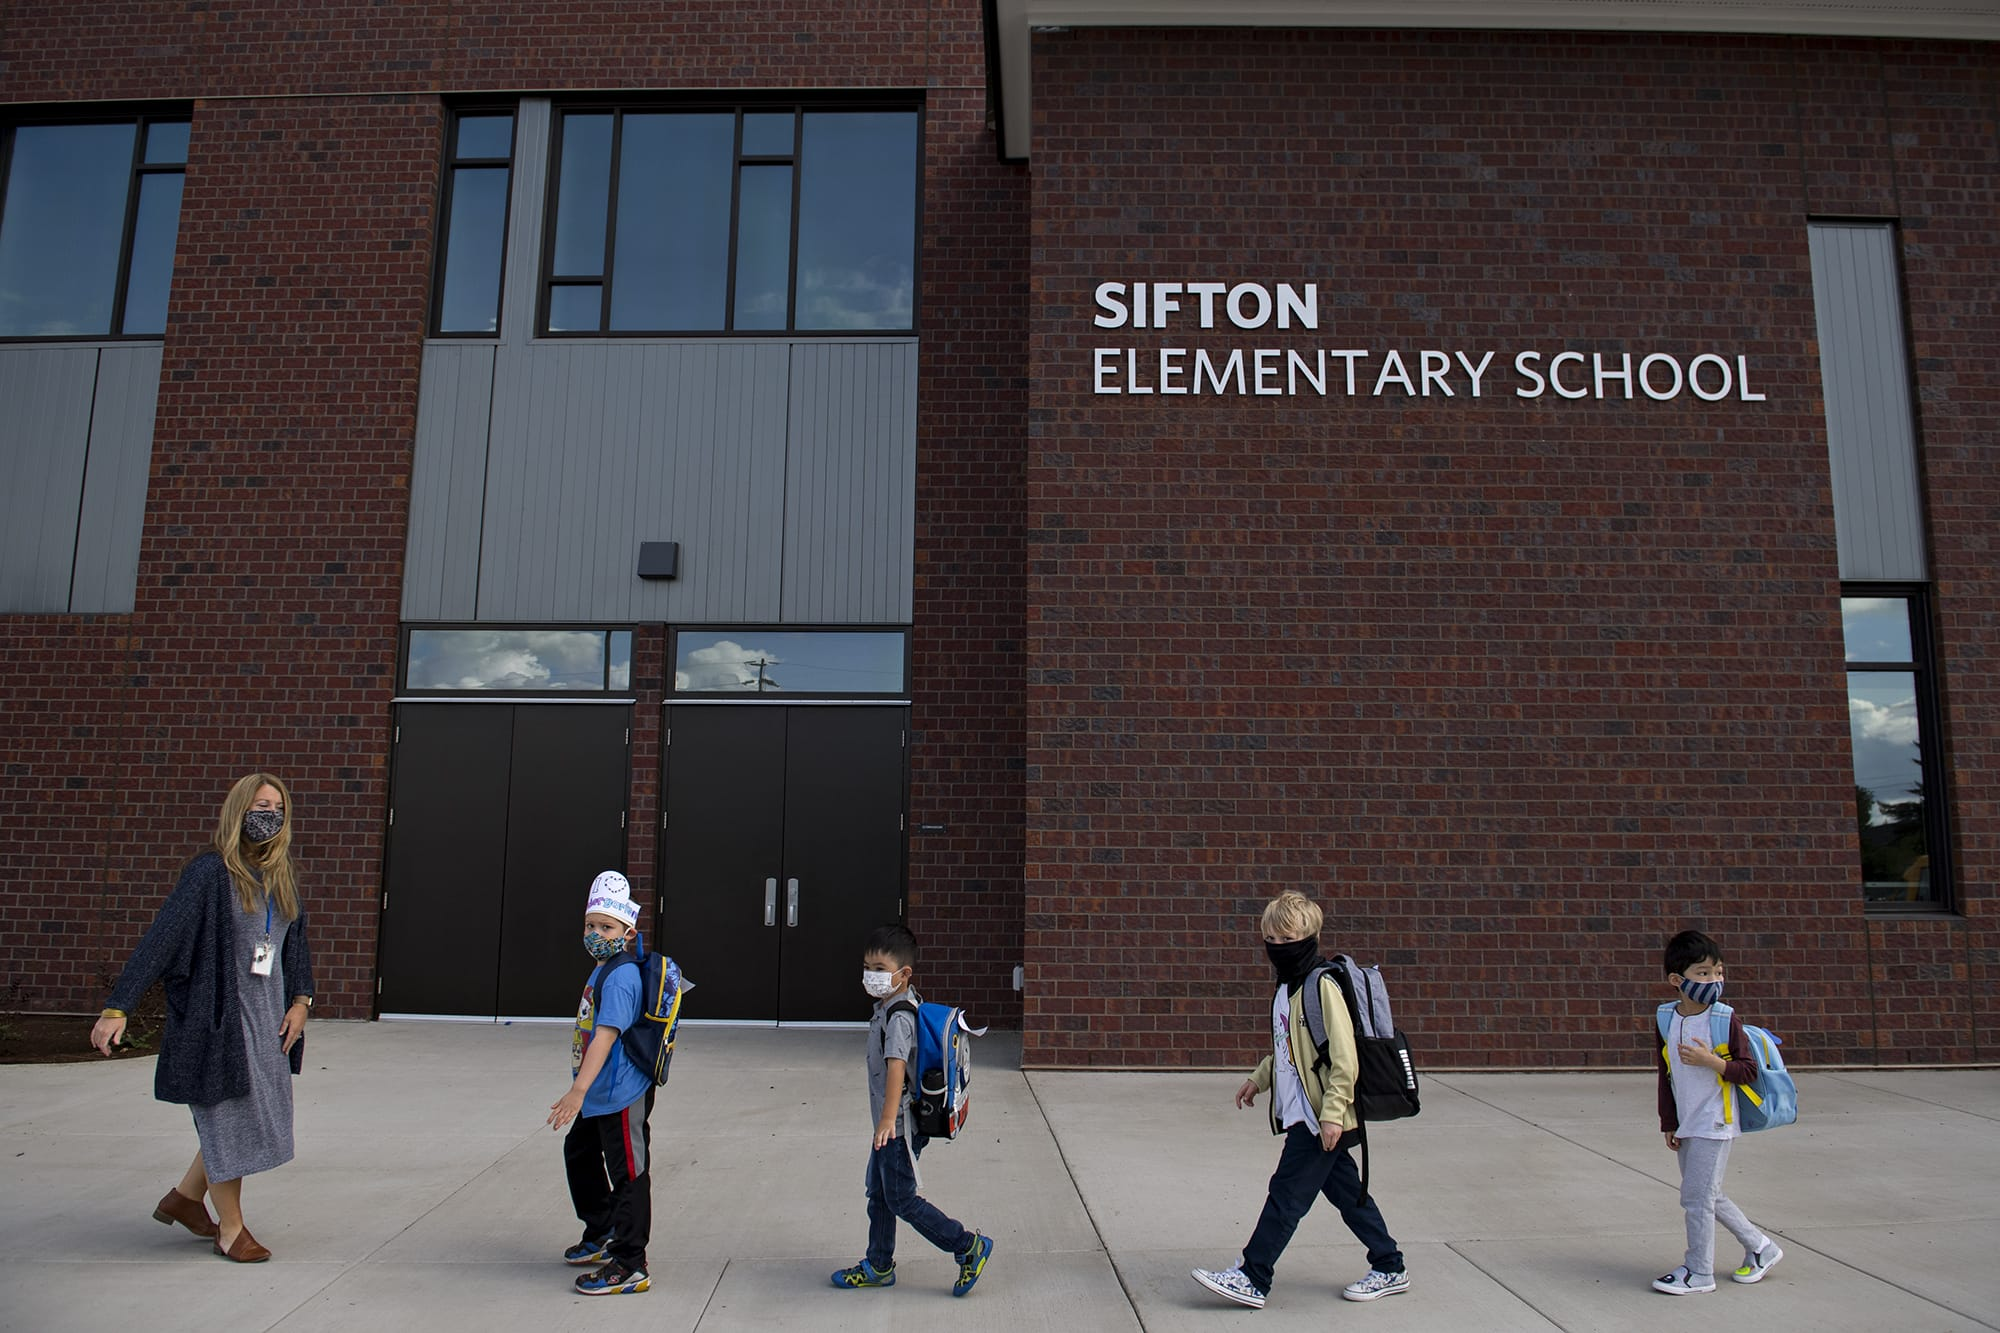 Kindergarten teacher Katie Plamondon, from left, leads students Phoenix Winmil, 5, Wes Charuchinda, 5, Emery Thomas, 6, and Jay Chou, 6, into the building for their second day of classes at Sifton Elementary School on Tuesday afternoon, Sept. 22, 2020. (Amanda Cowan/The Columbian)